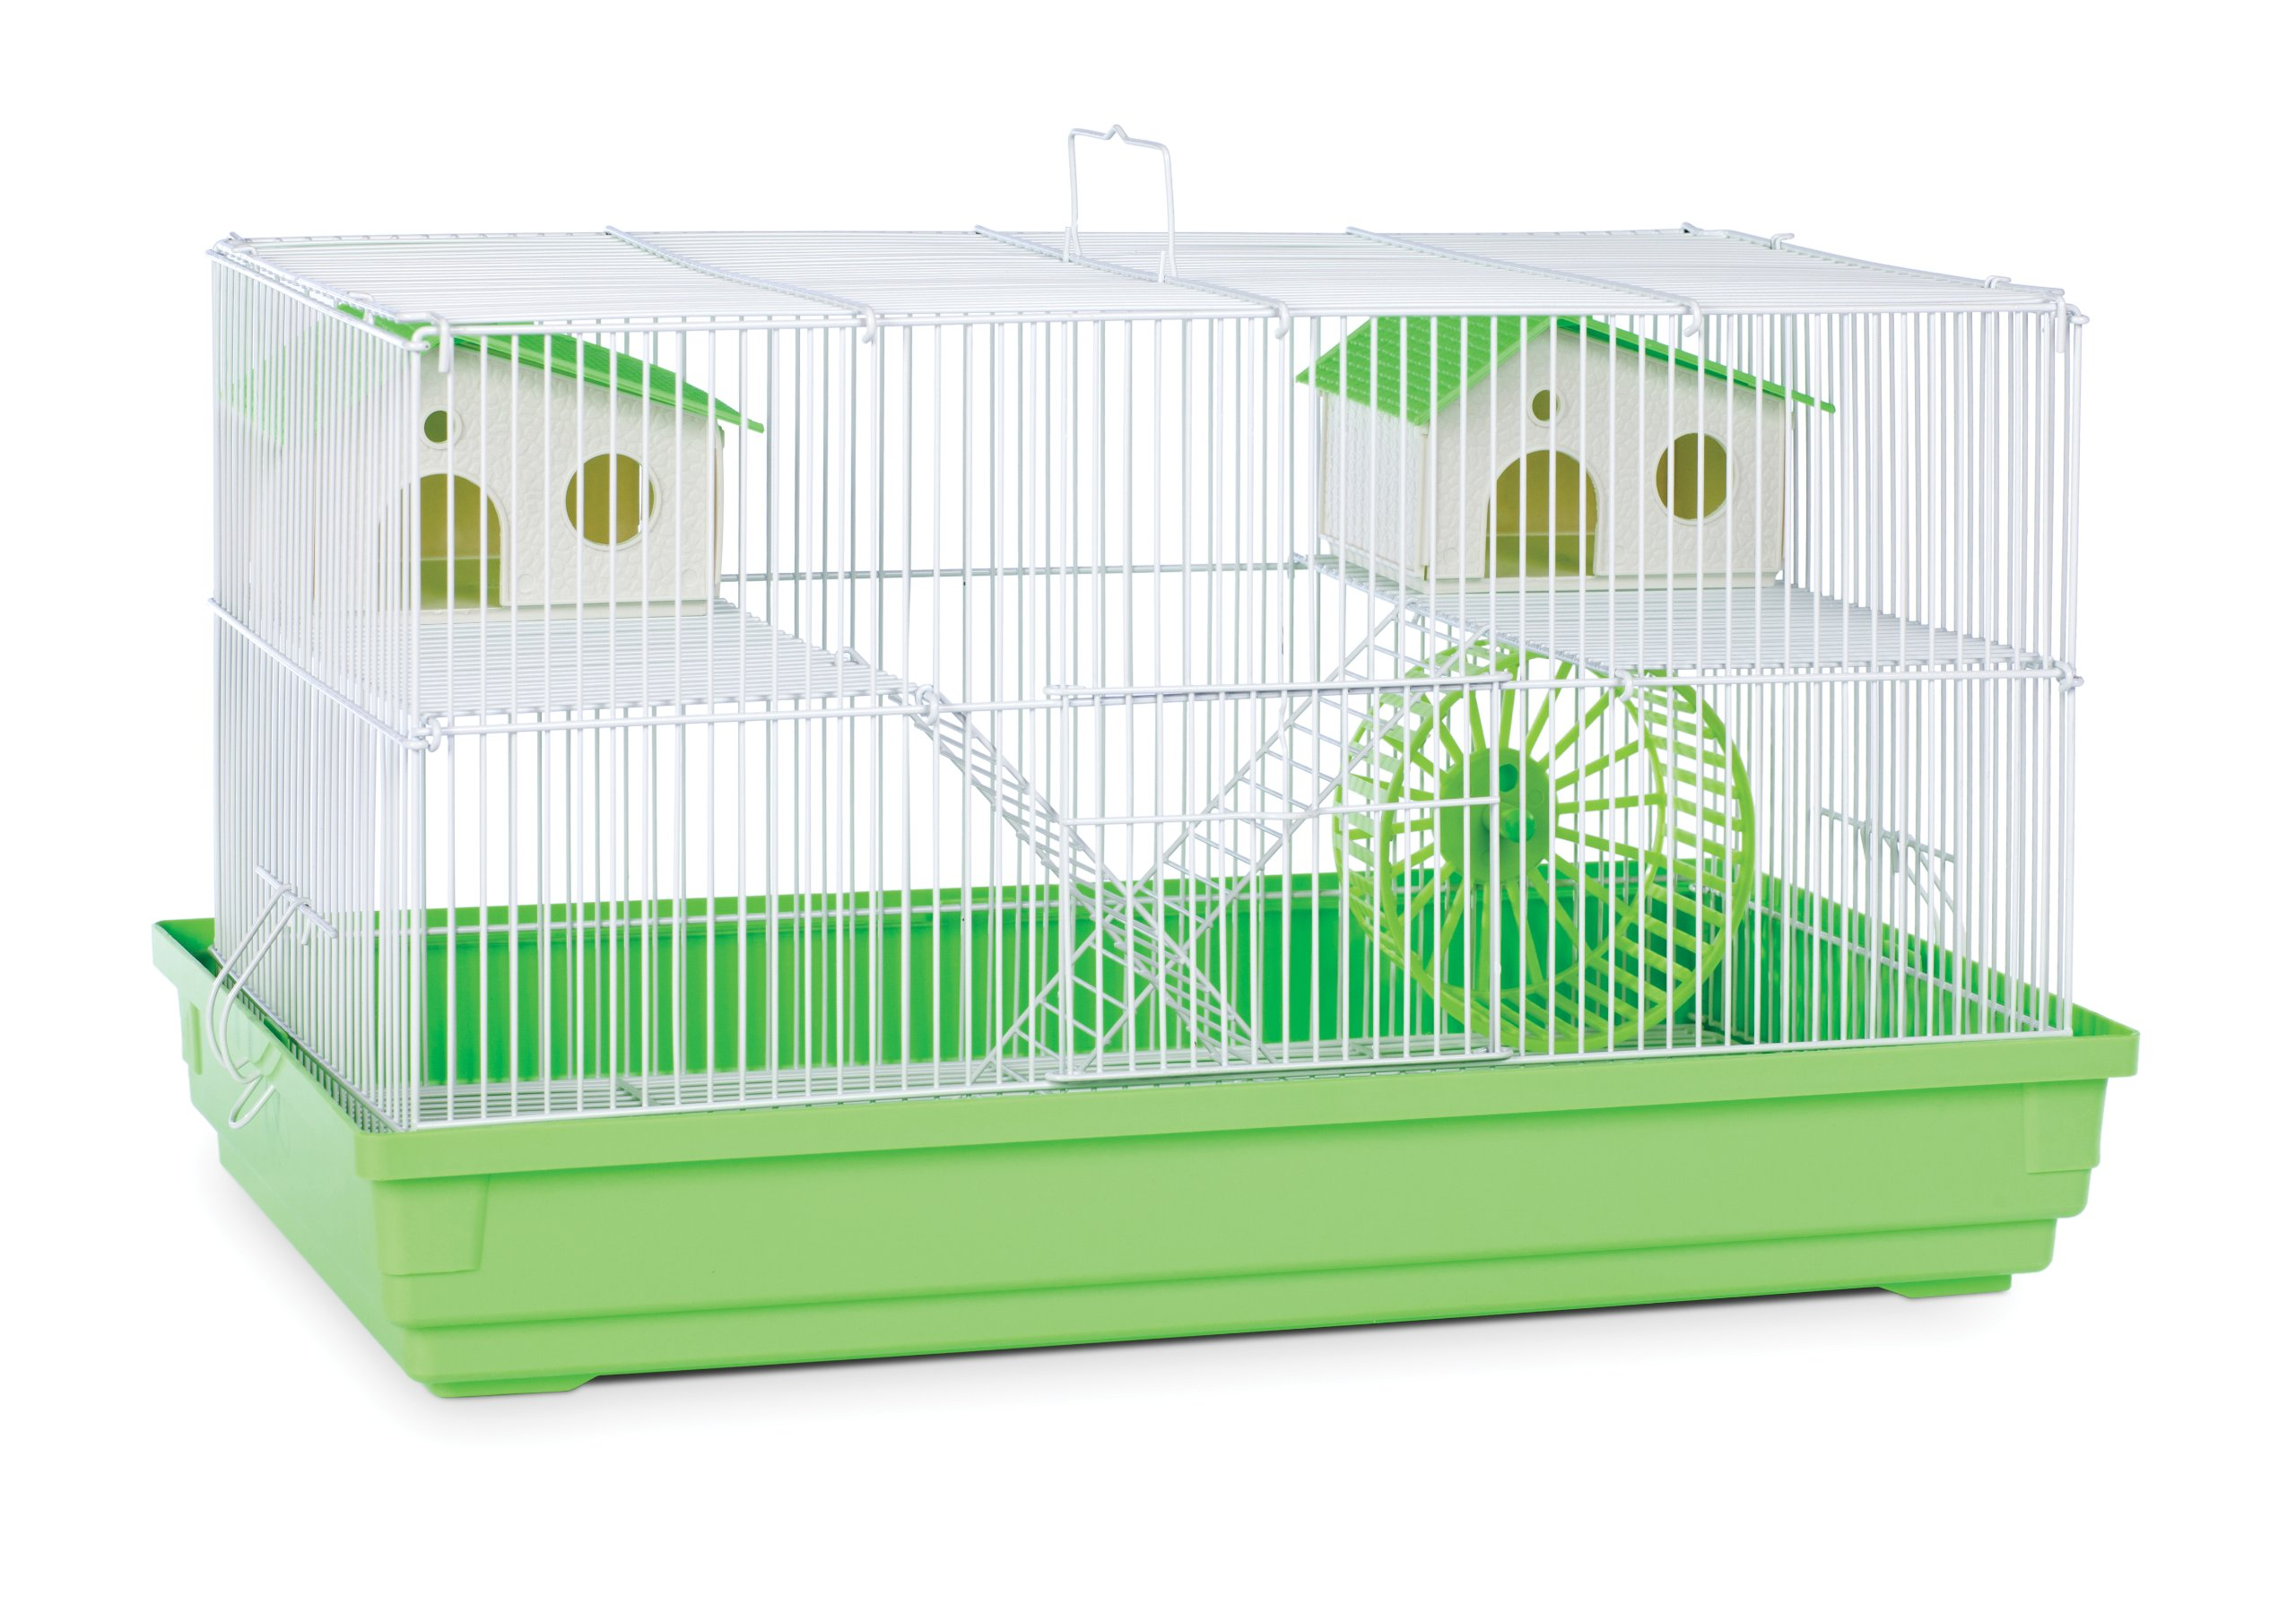 Prevue Hendryx SP2060G Deluxe Hamster and Gerbil Cage, Lime Green